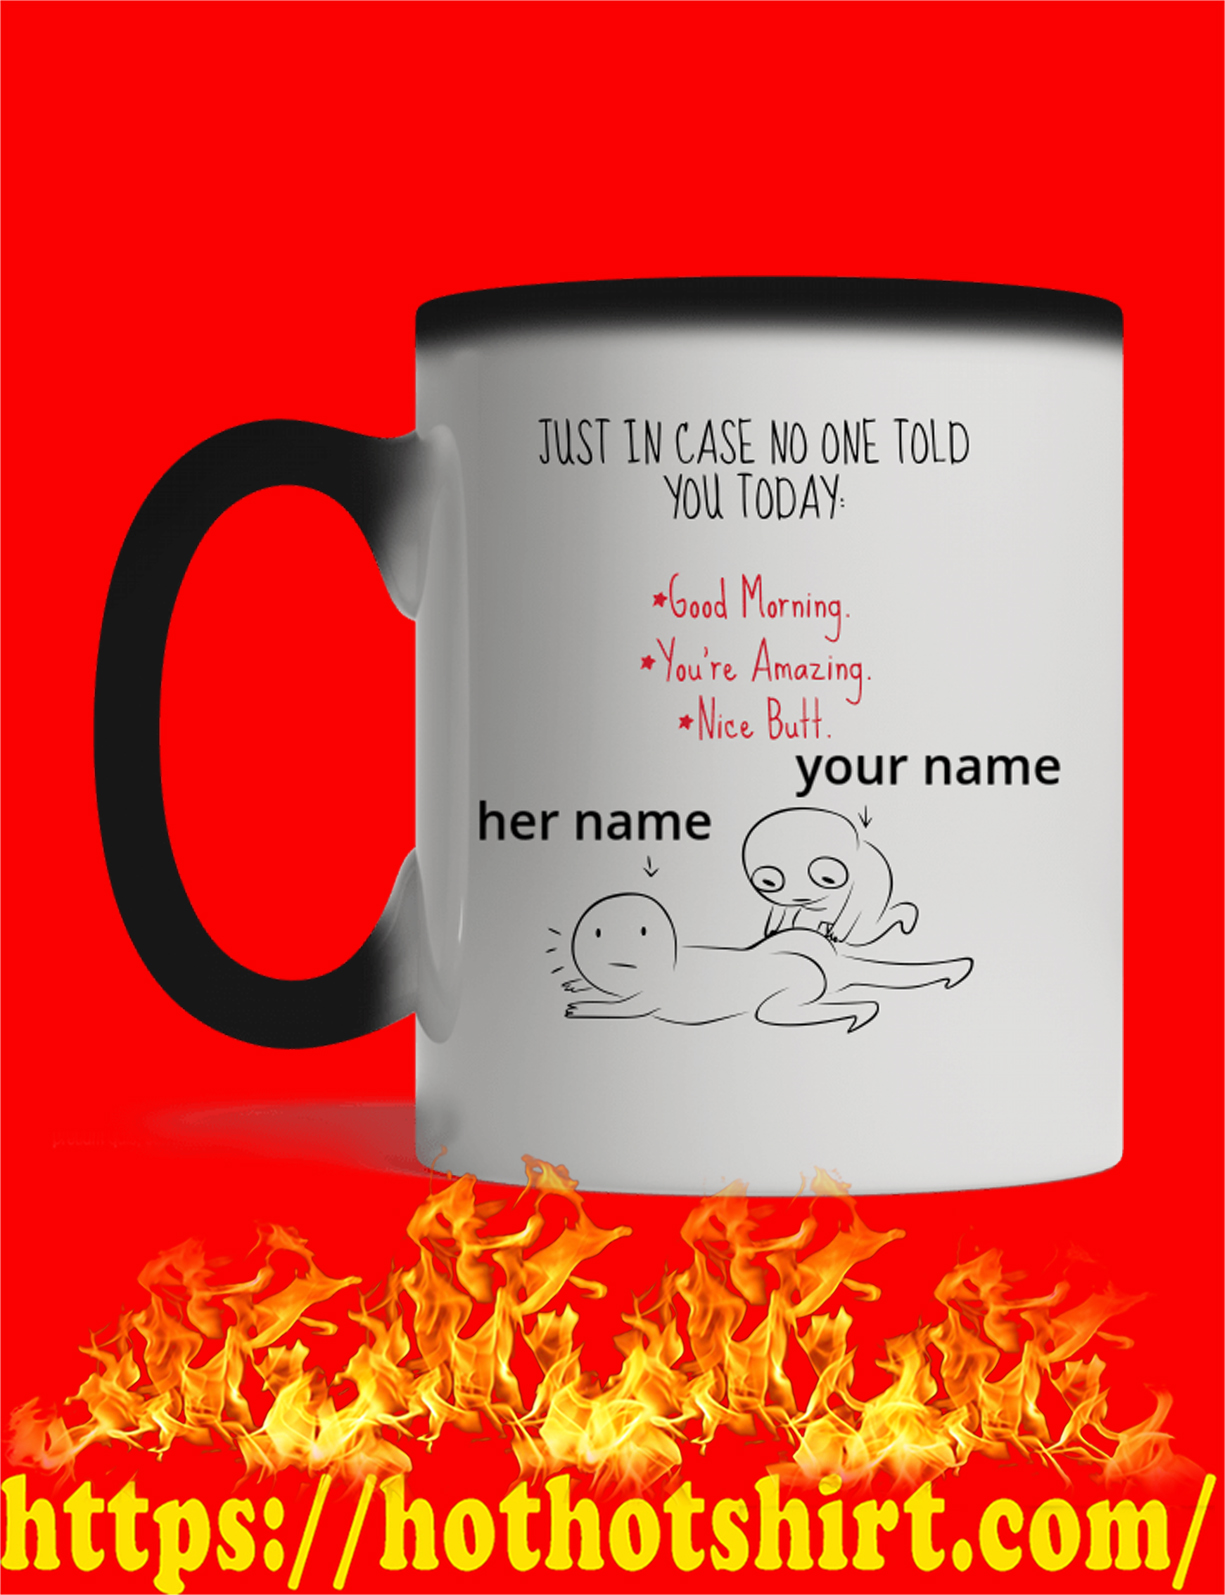 Personalized custom Just in case no one told you today good morning magic mug